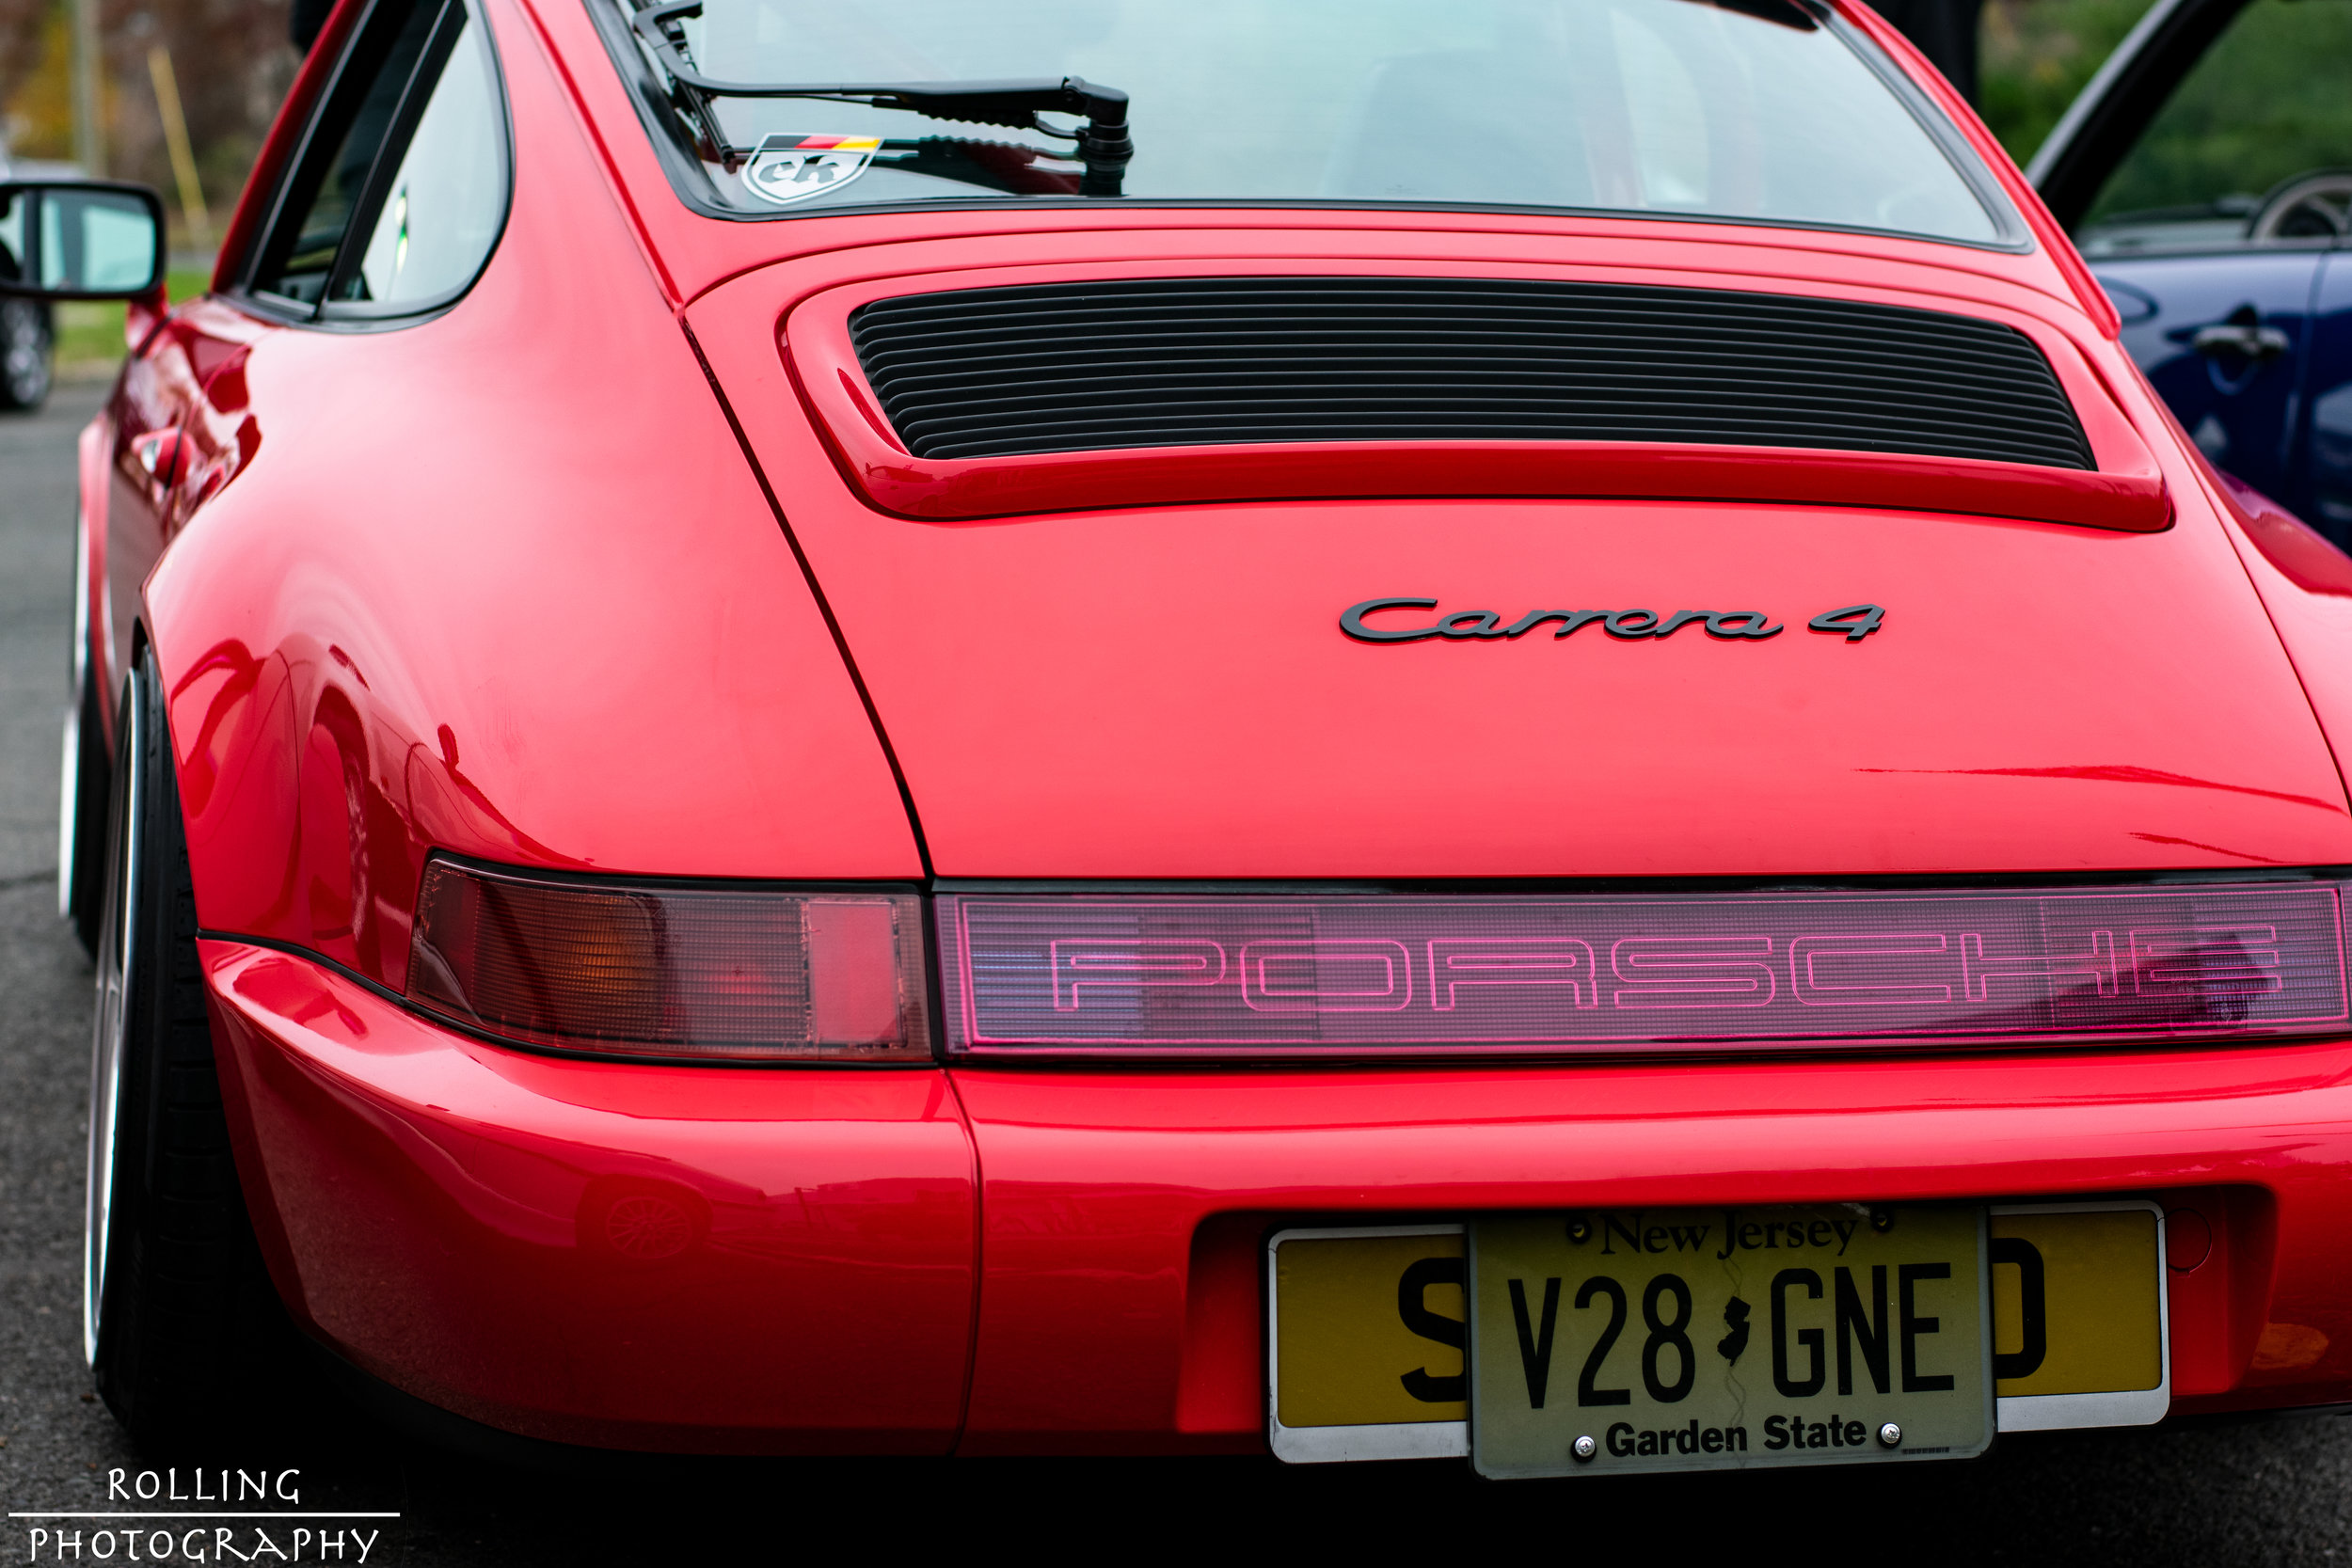 Euro_Kult Carrera 4 Rear.jpg